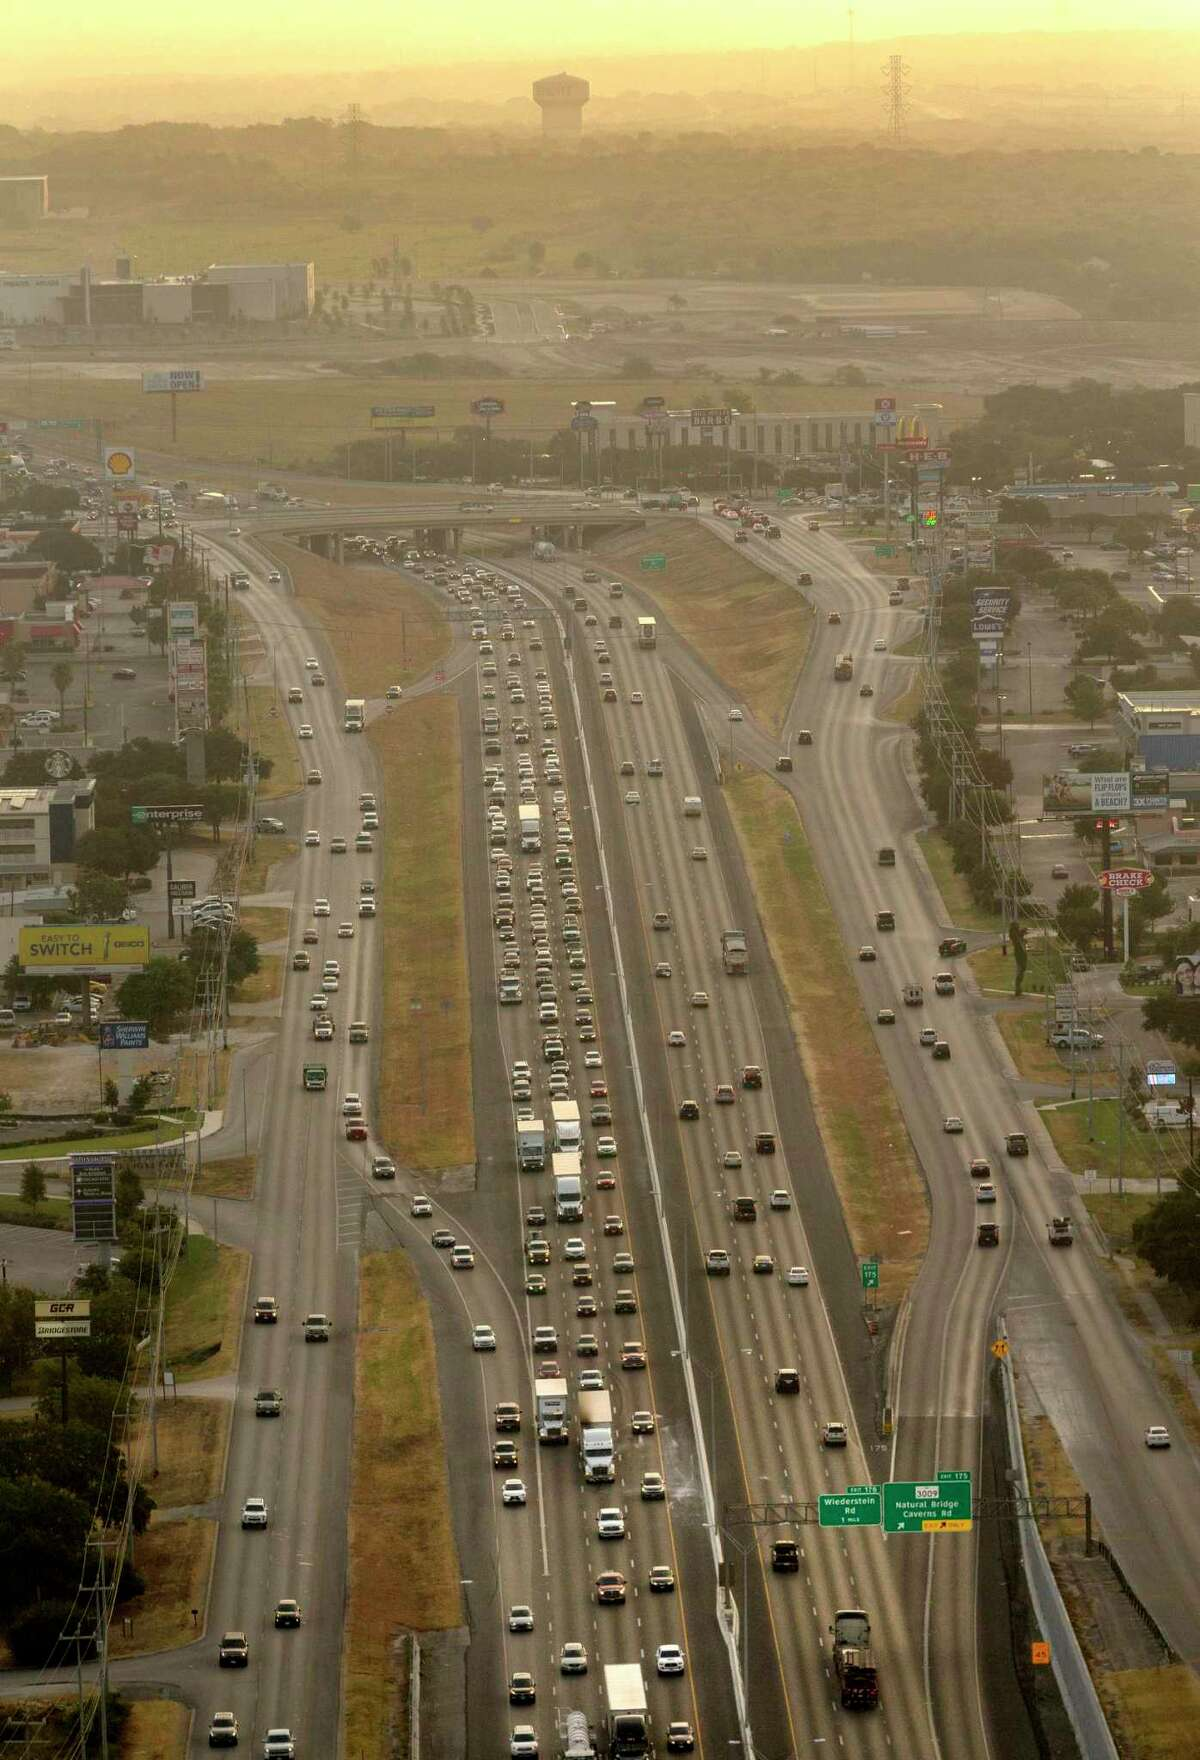 Southbound vehicles fill all the lanes Thursday morning, Aug., 22, 2019 of Interstate 35 on the north side near FM 3009 during morning rush hour. The Texas Department of Transportation has unveiled plans for a 20-mile expansion of I-35 north of Loop 410, including this section, that would make the state?•s busiest stretch of interstate a limited-access, non-tolled, double-decked highway through Selma and Schertz.